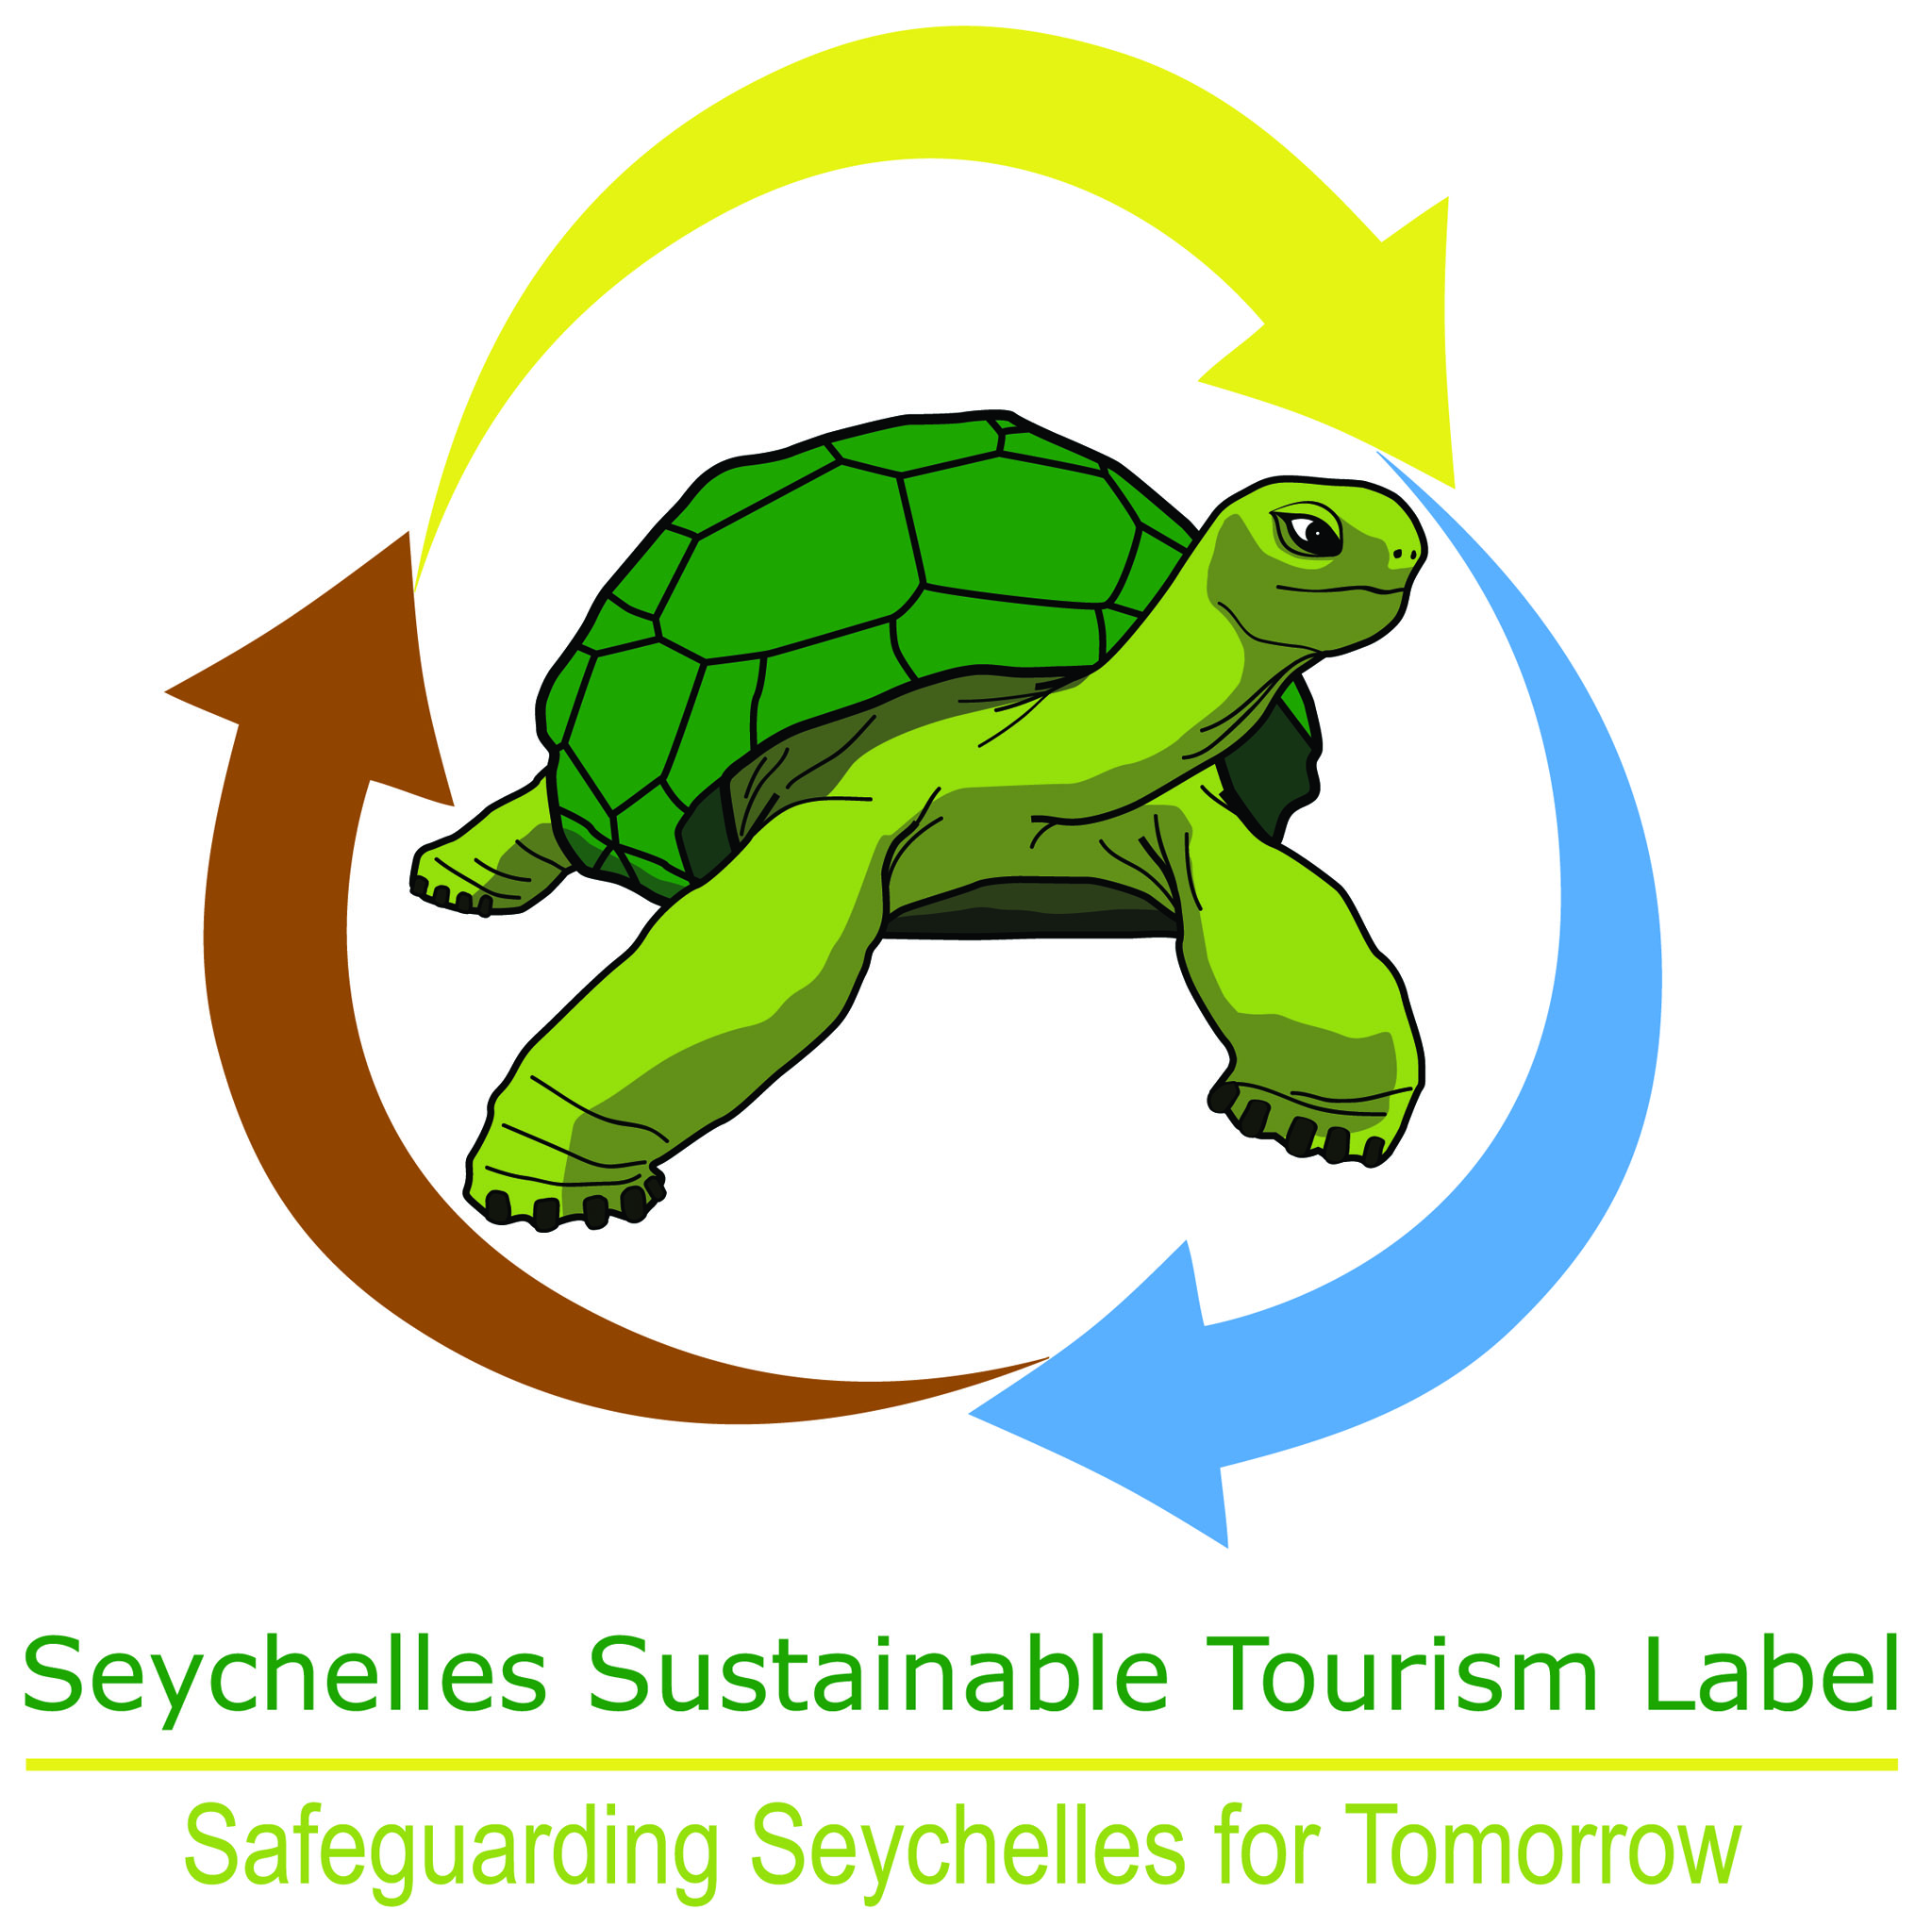 The COAST Project Sharing Results on the Seychelles Sustainable Tourism Label (SSTL)